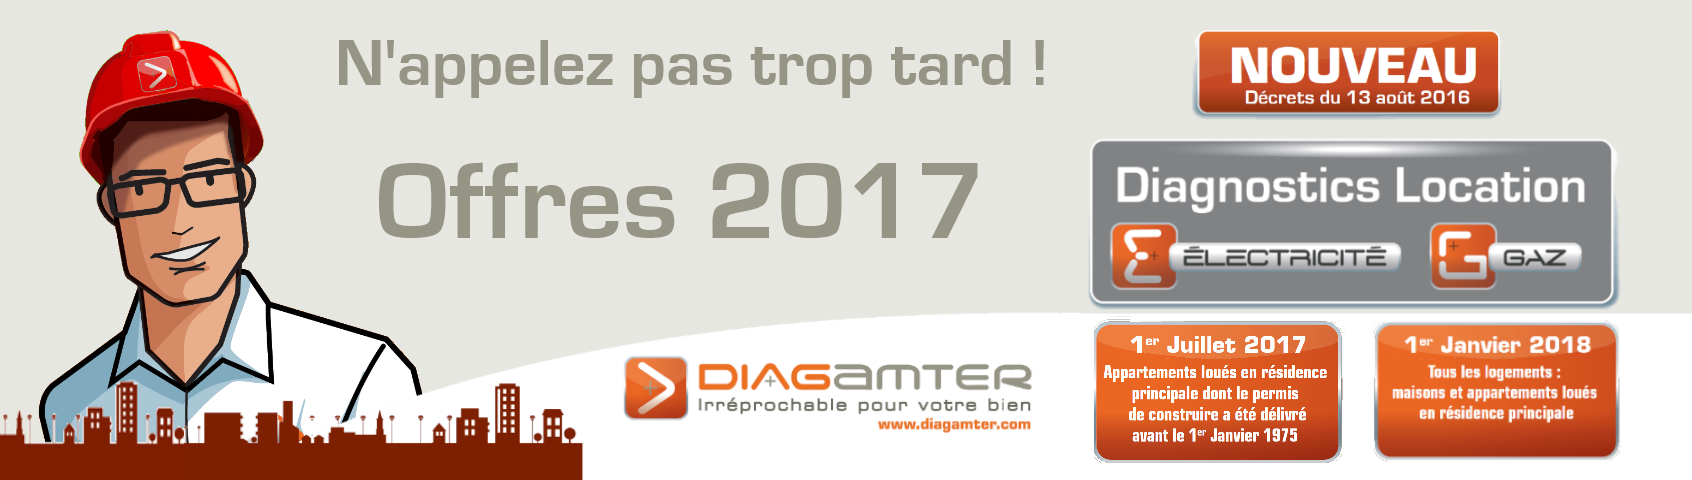 Diagnostic gaz location obligatoire partir 1er juillet 2017 diagamter - Diagnostic electricite location ...